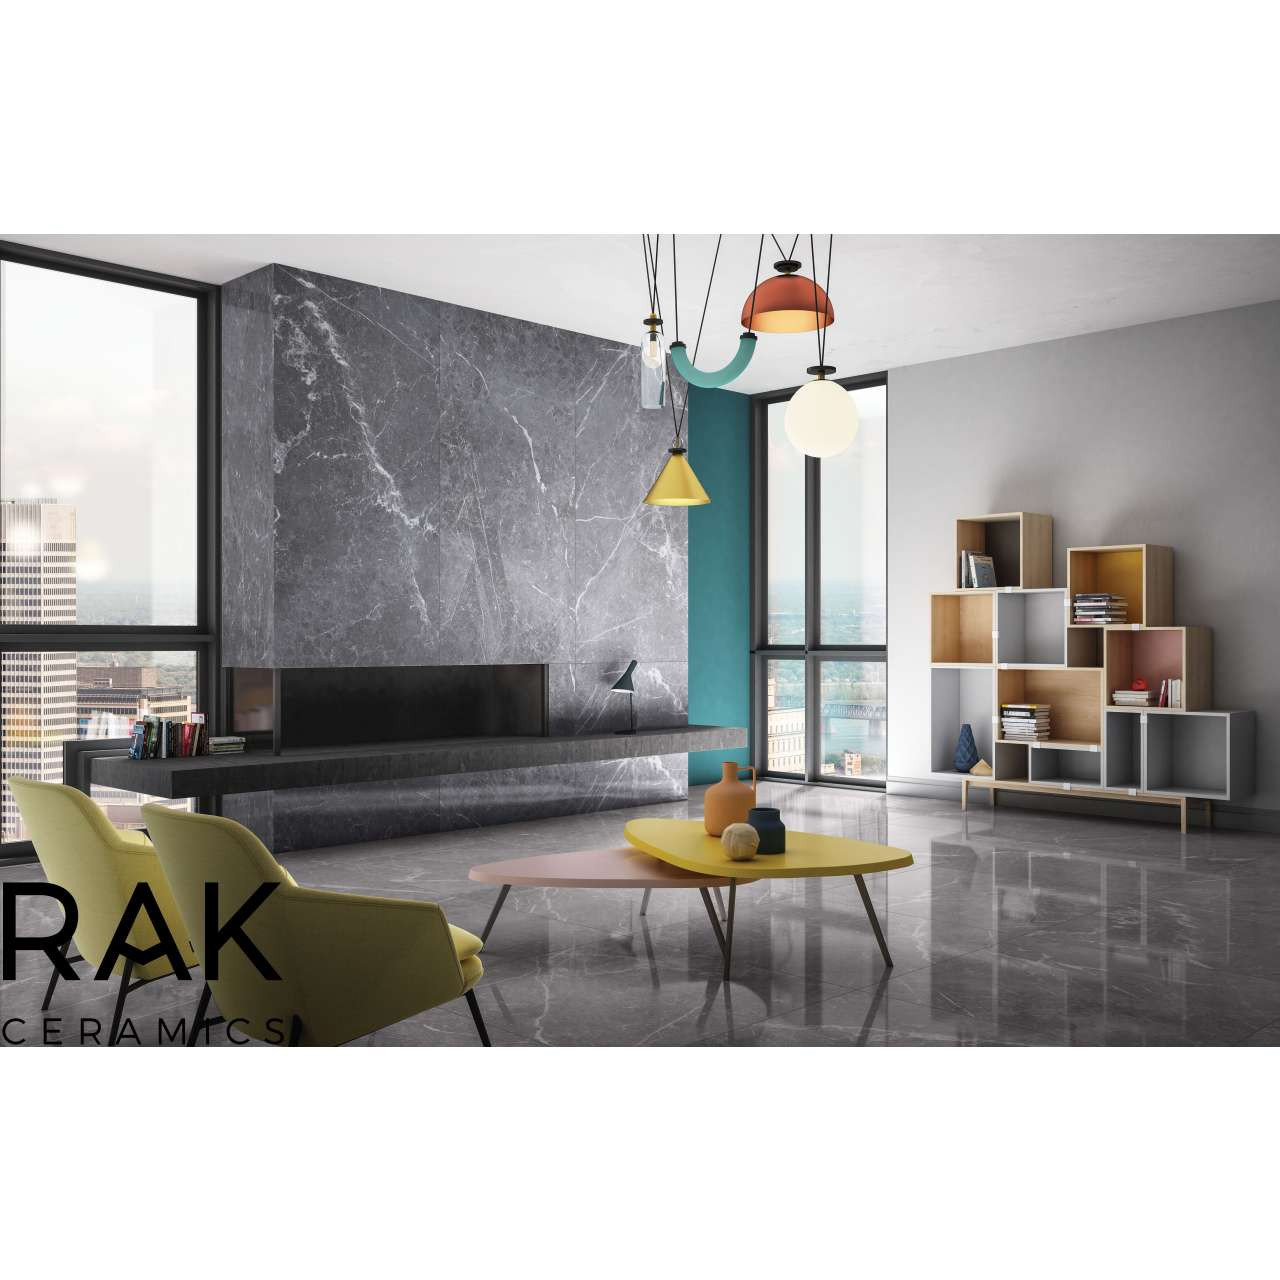 RAK Maximus Blu Del Belgio Clay Lappato 120cm x 260cm Porcelain Floor and Wall Tile - A62GZBLB-CL0.G0C6P